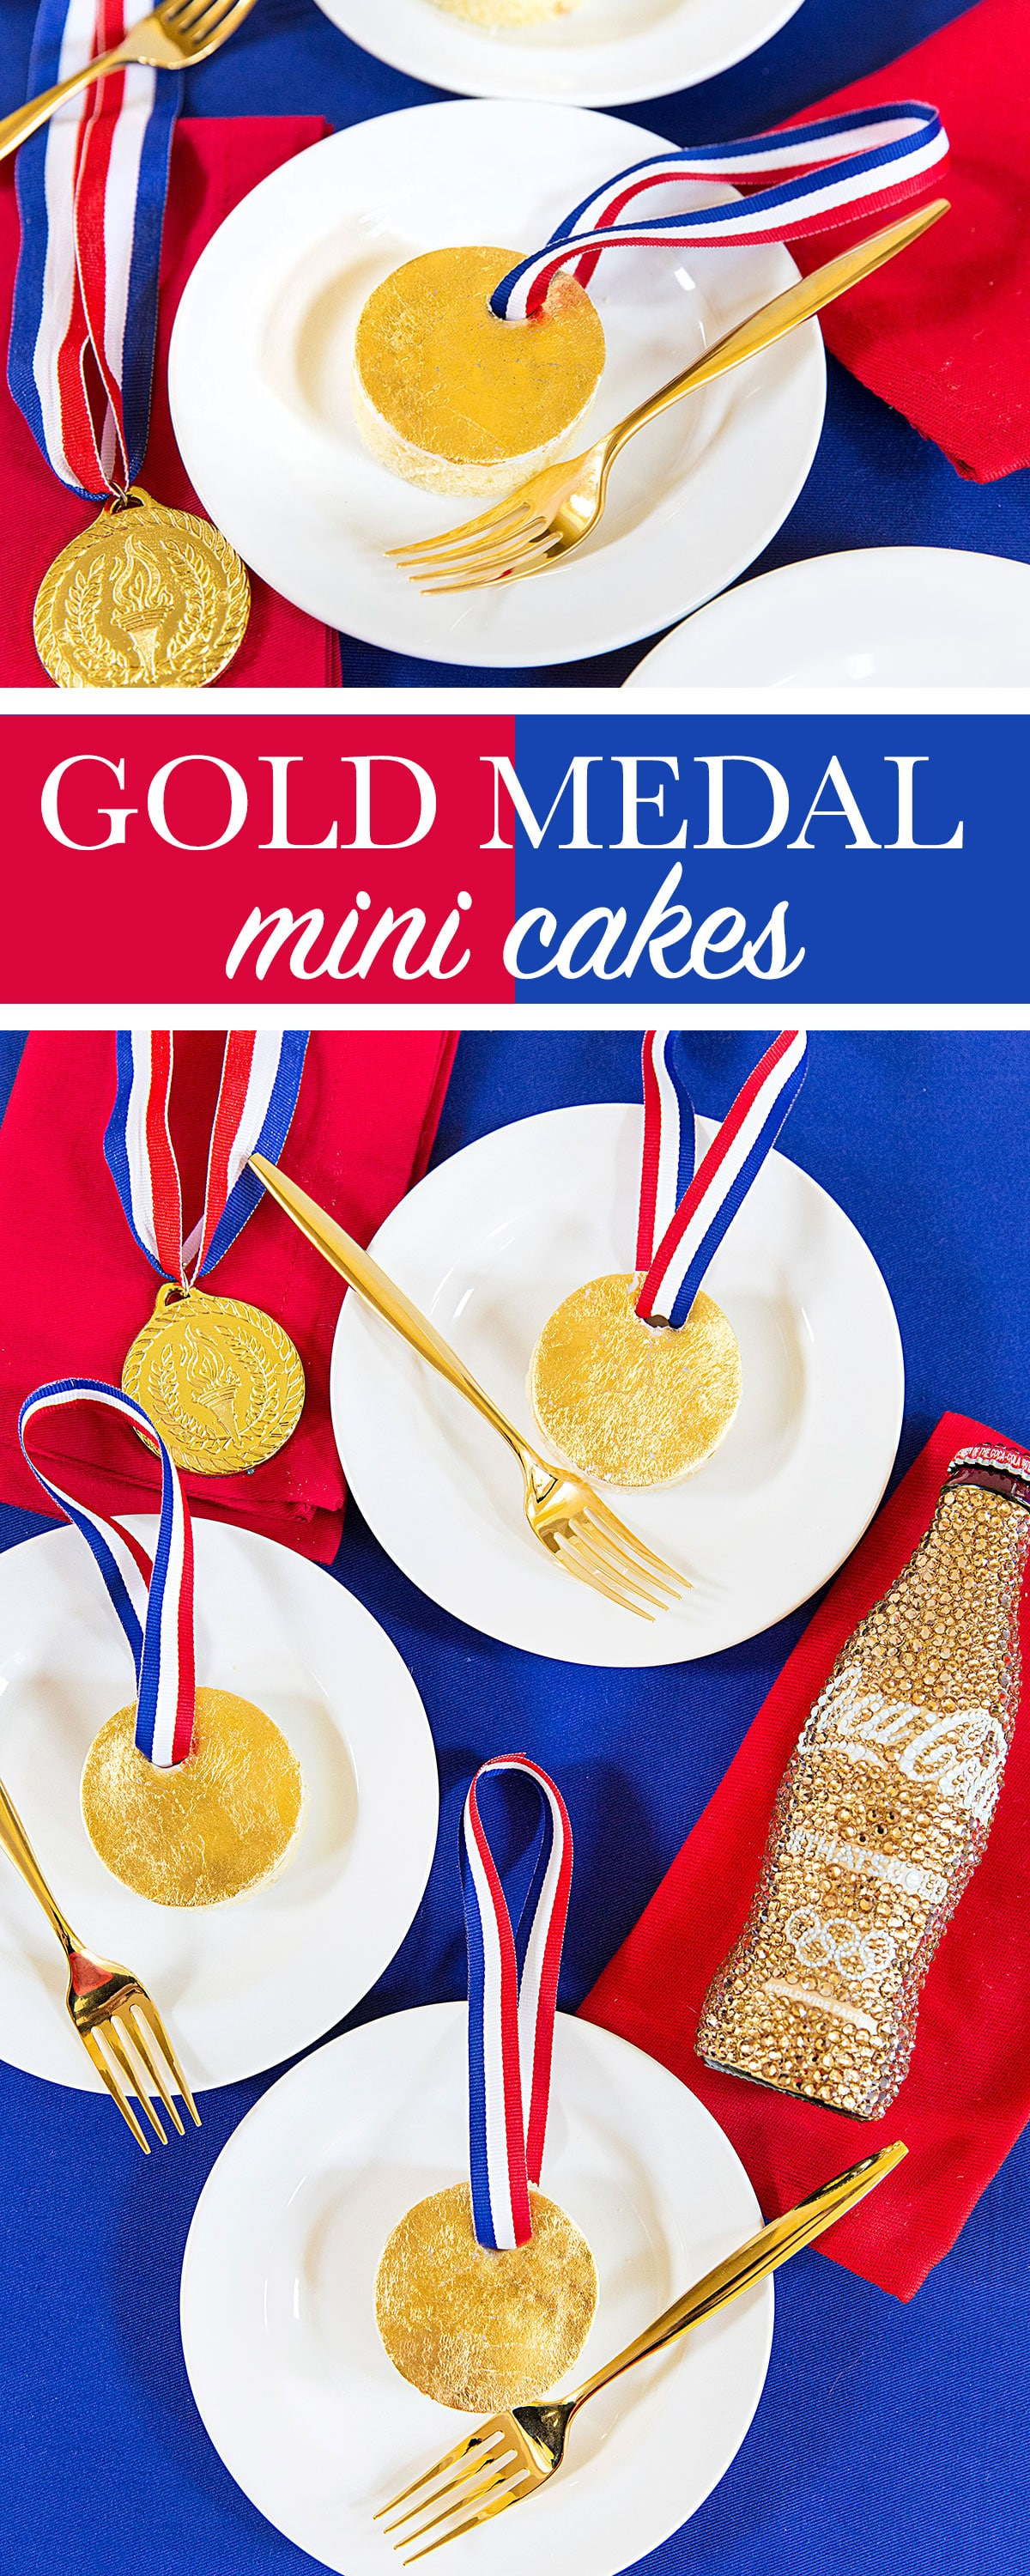 Mini Gold Medal Cakes - Recipe & DIY for Olympics!